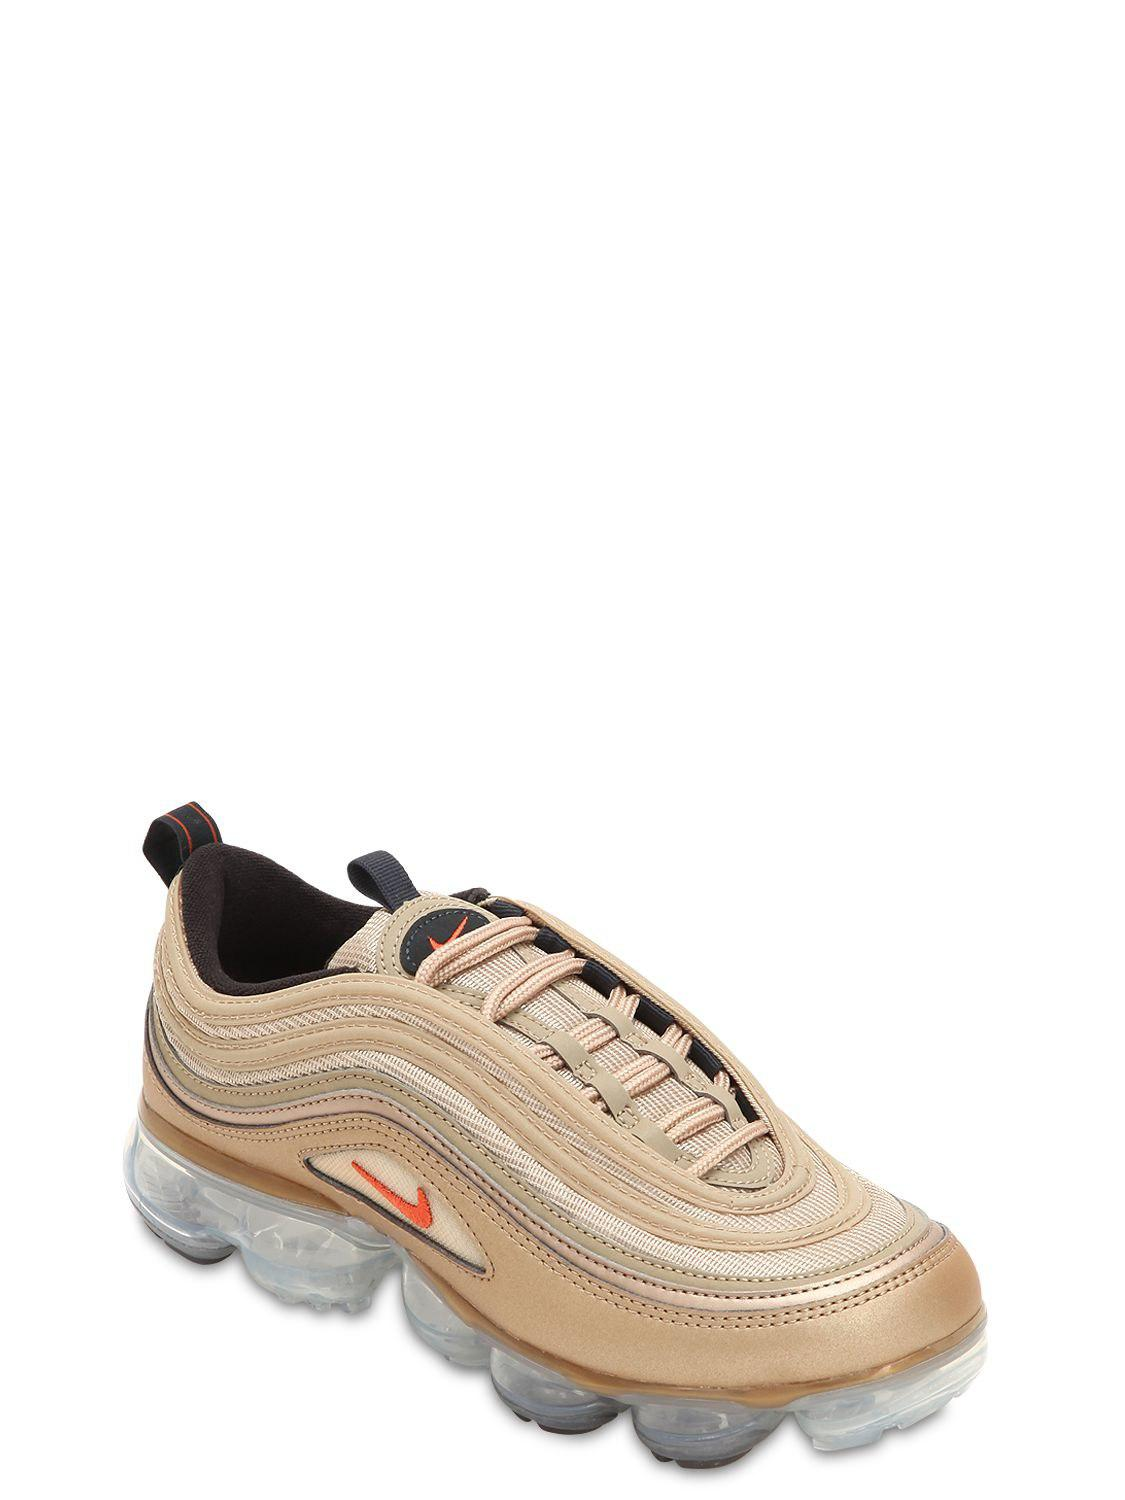 Lyst - Nike Air Vapormax 97 Sneakers - Save 21% 0c368a997